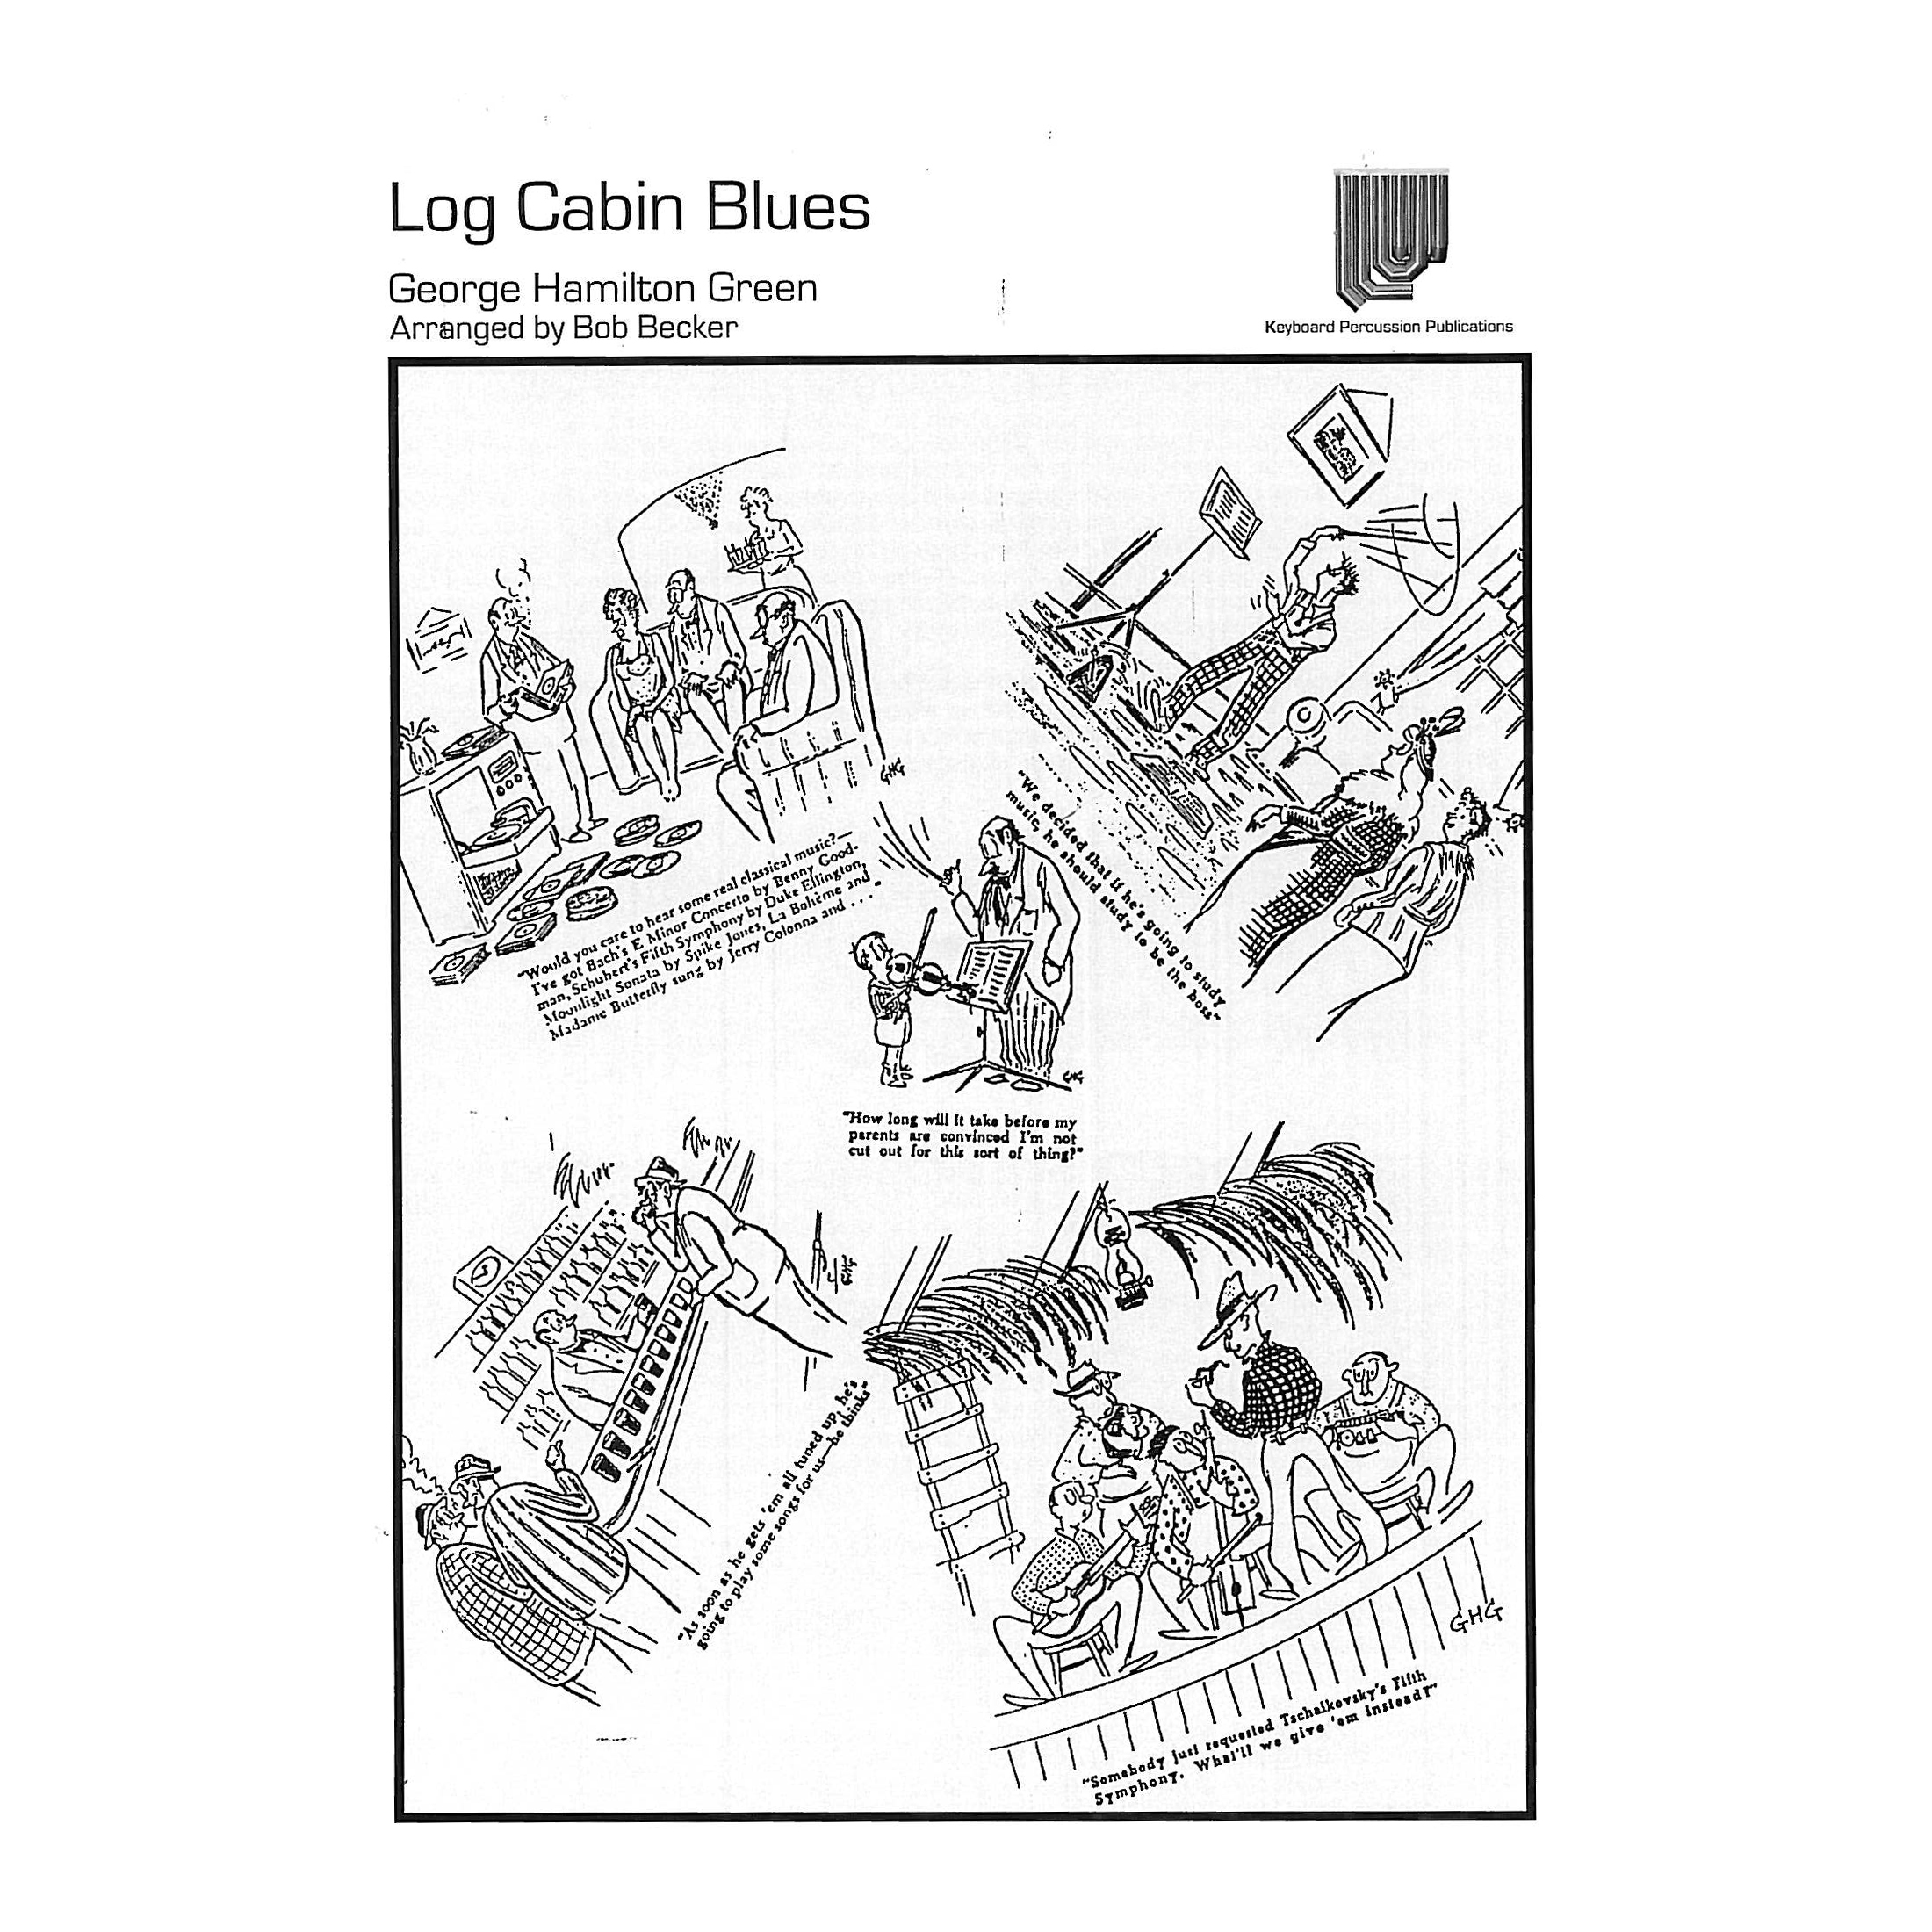 Log Cabin Blues by George Hamilton Green arr. Bob Becker